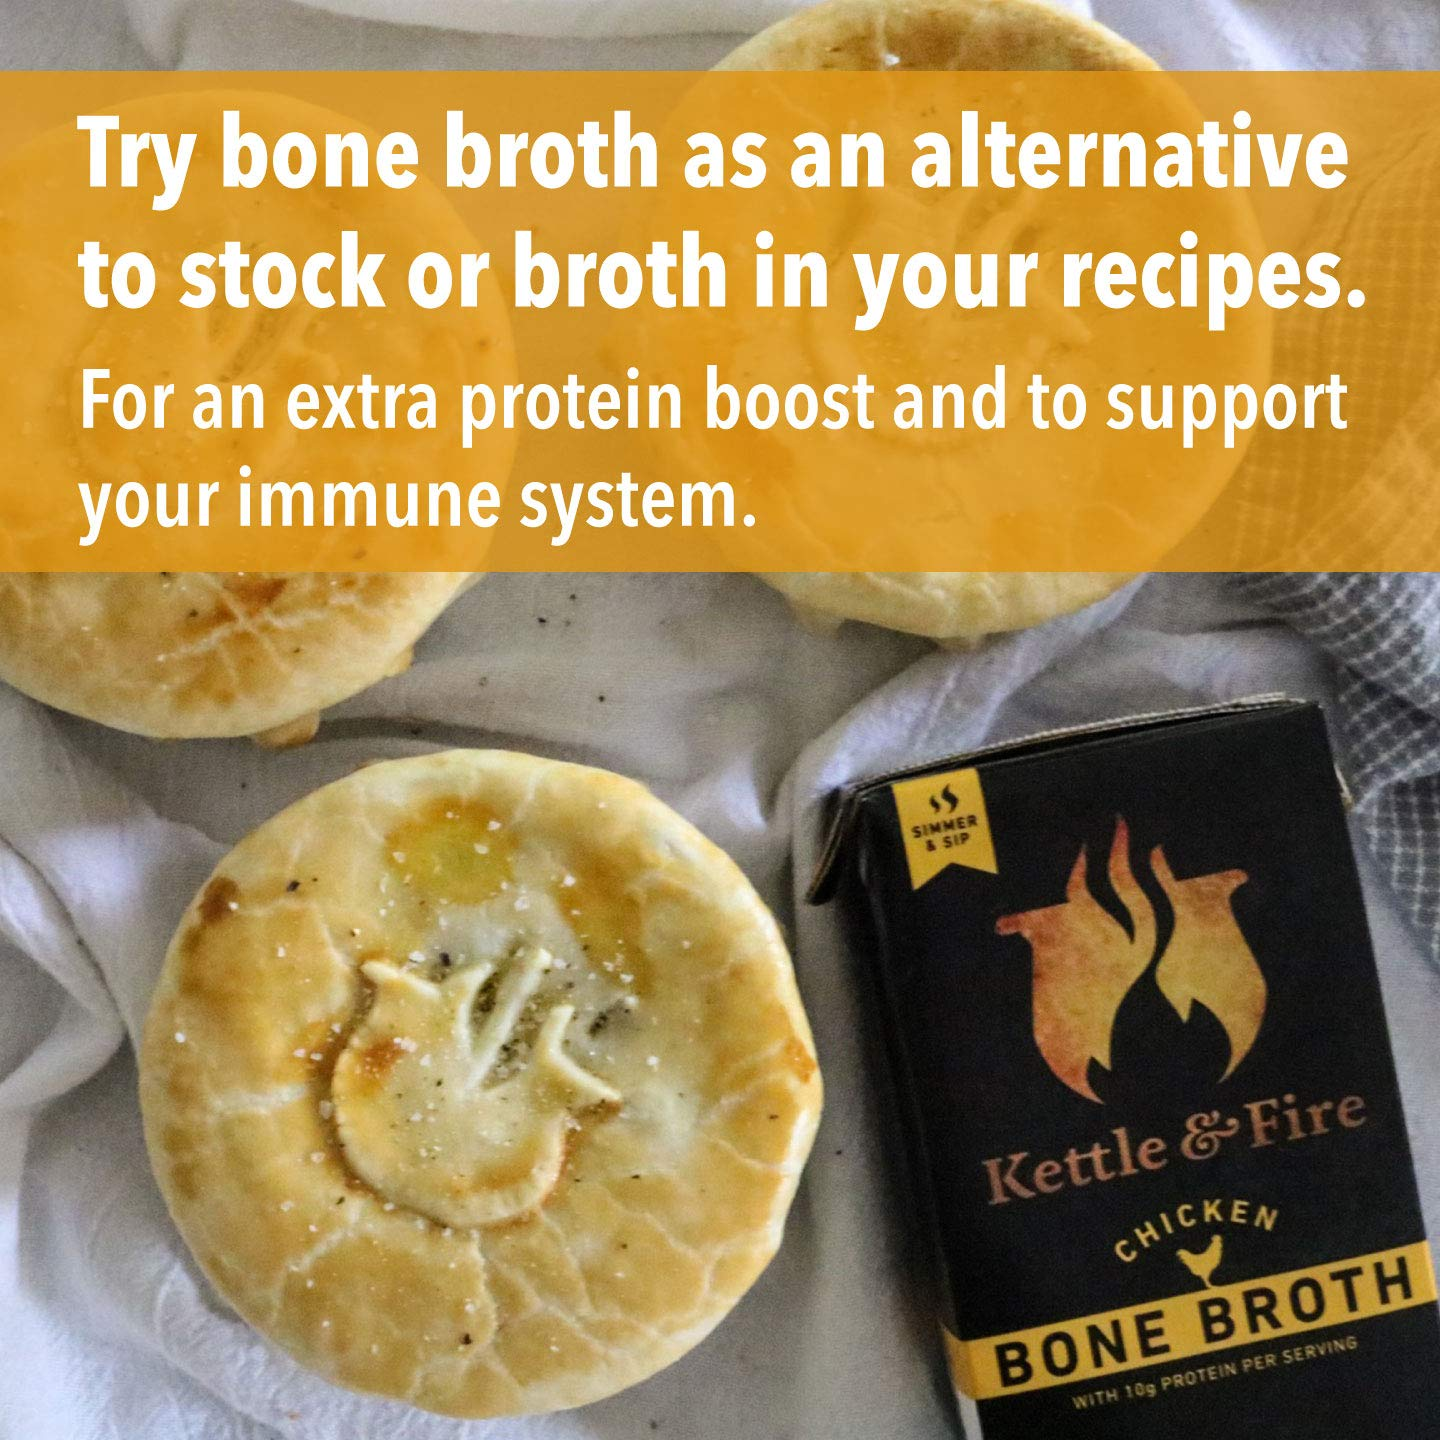 Chicken Bone Broth Soup by Kettle and Fire, Pack of 12, Keto Diet, Paleo Friendly, Whole 30 Approved, Gluten Free, with Collagen, 7g of protein, 16.9 fl oz by Kettle & Fire (Image #1)